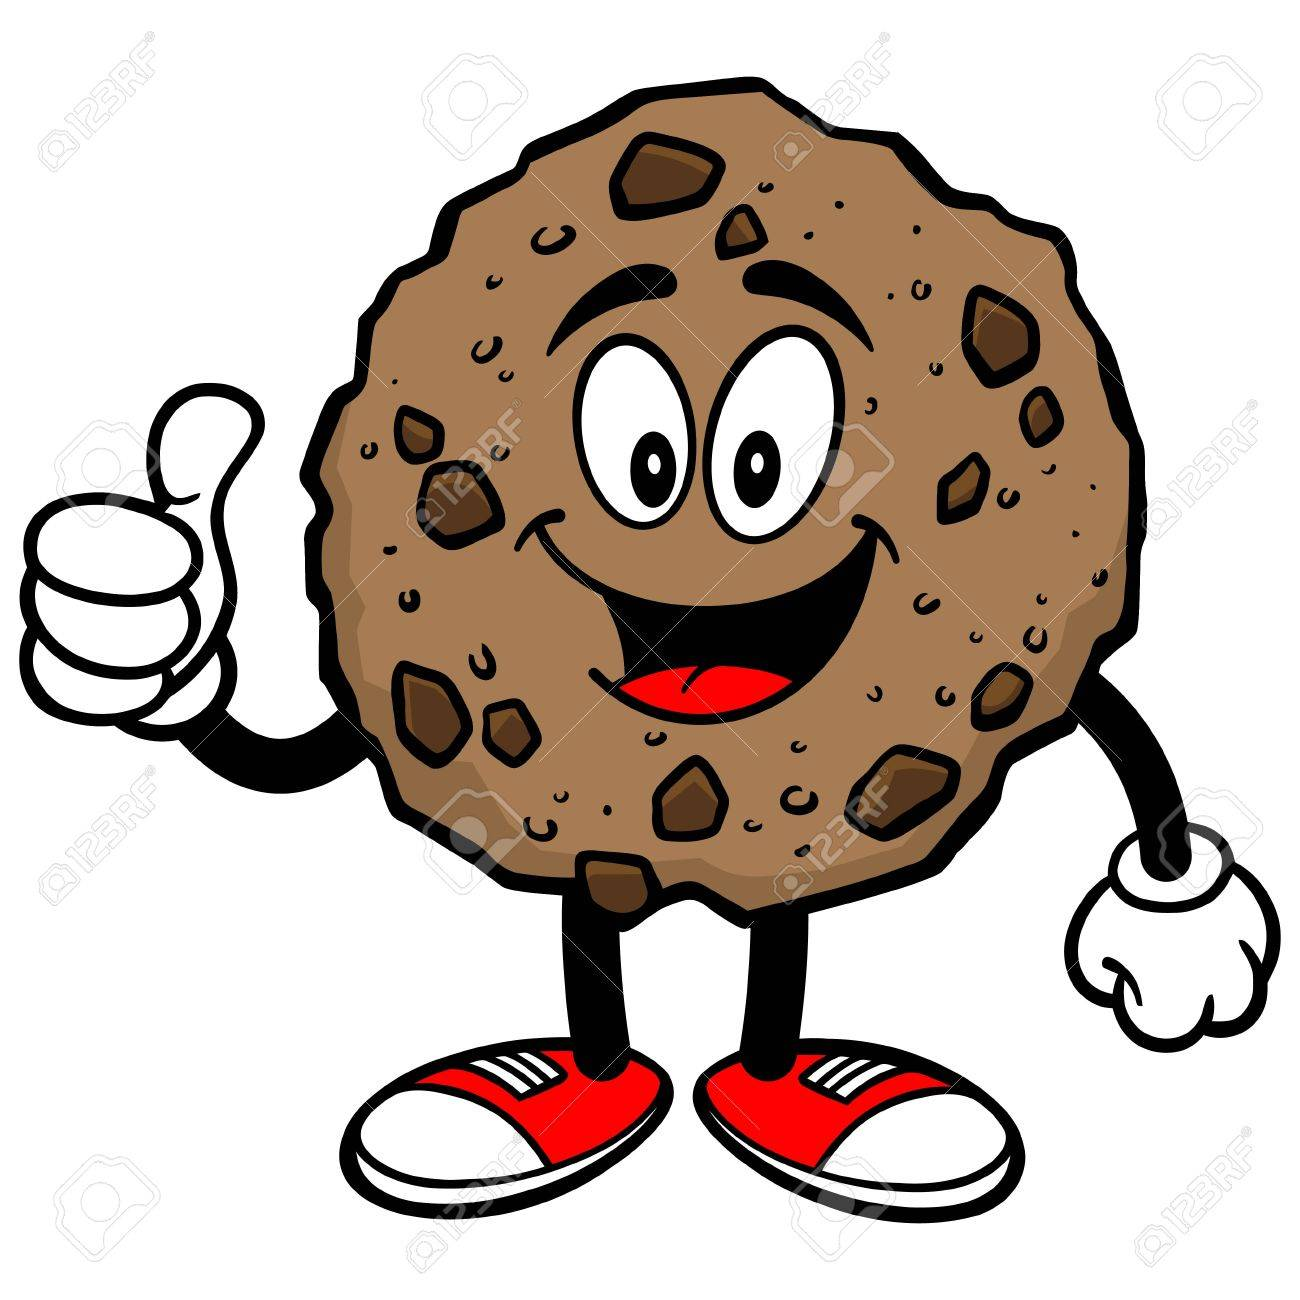 1300x1300 Chocolate Chip Cookie With Thumbs Up Royalty Free Cliparts